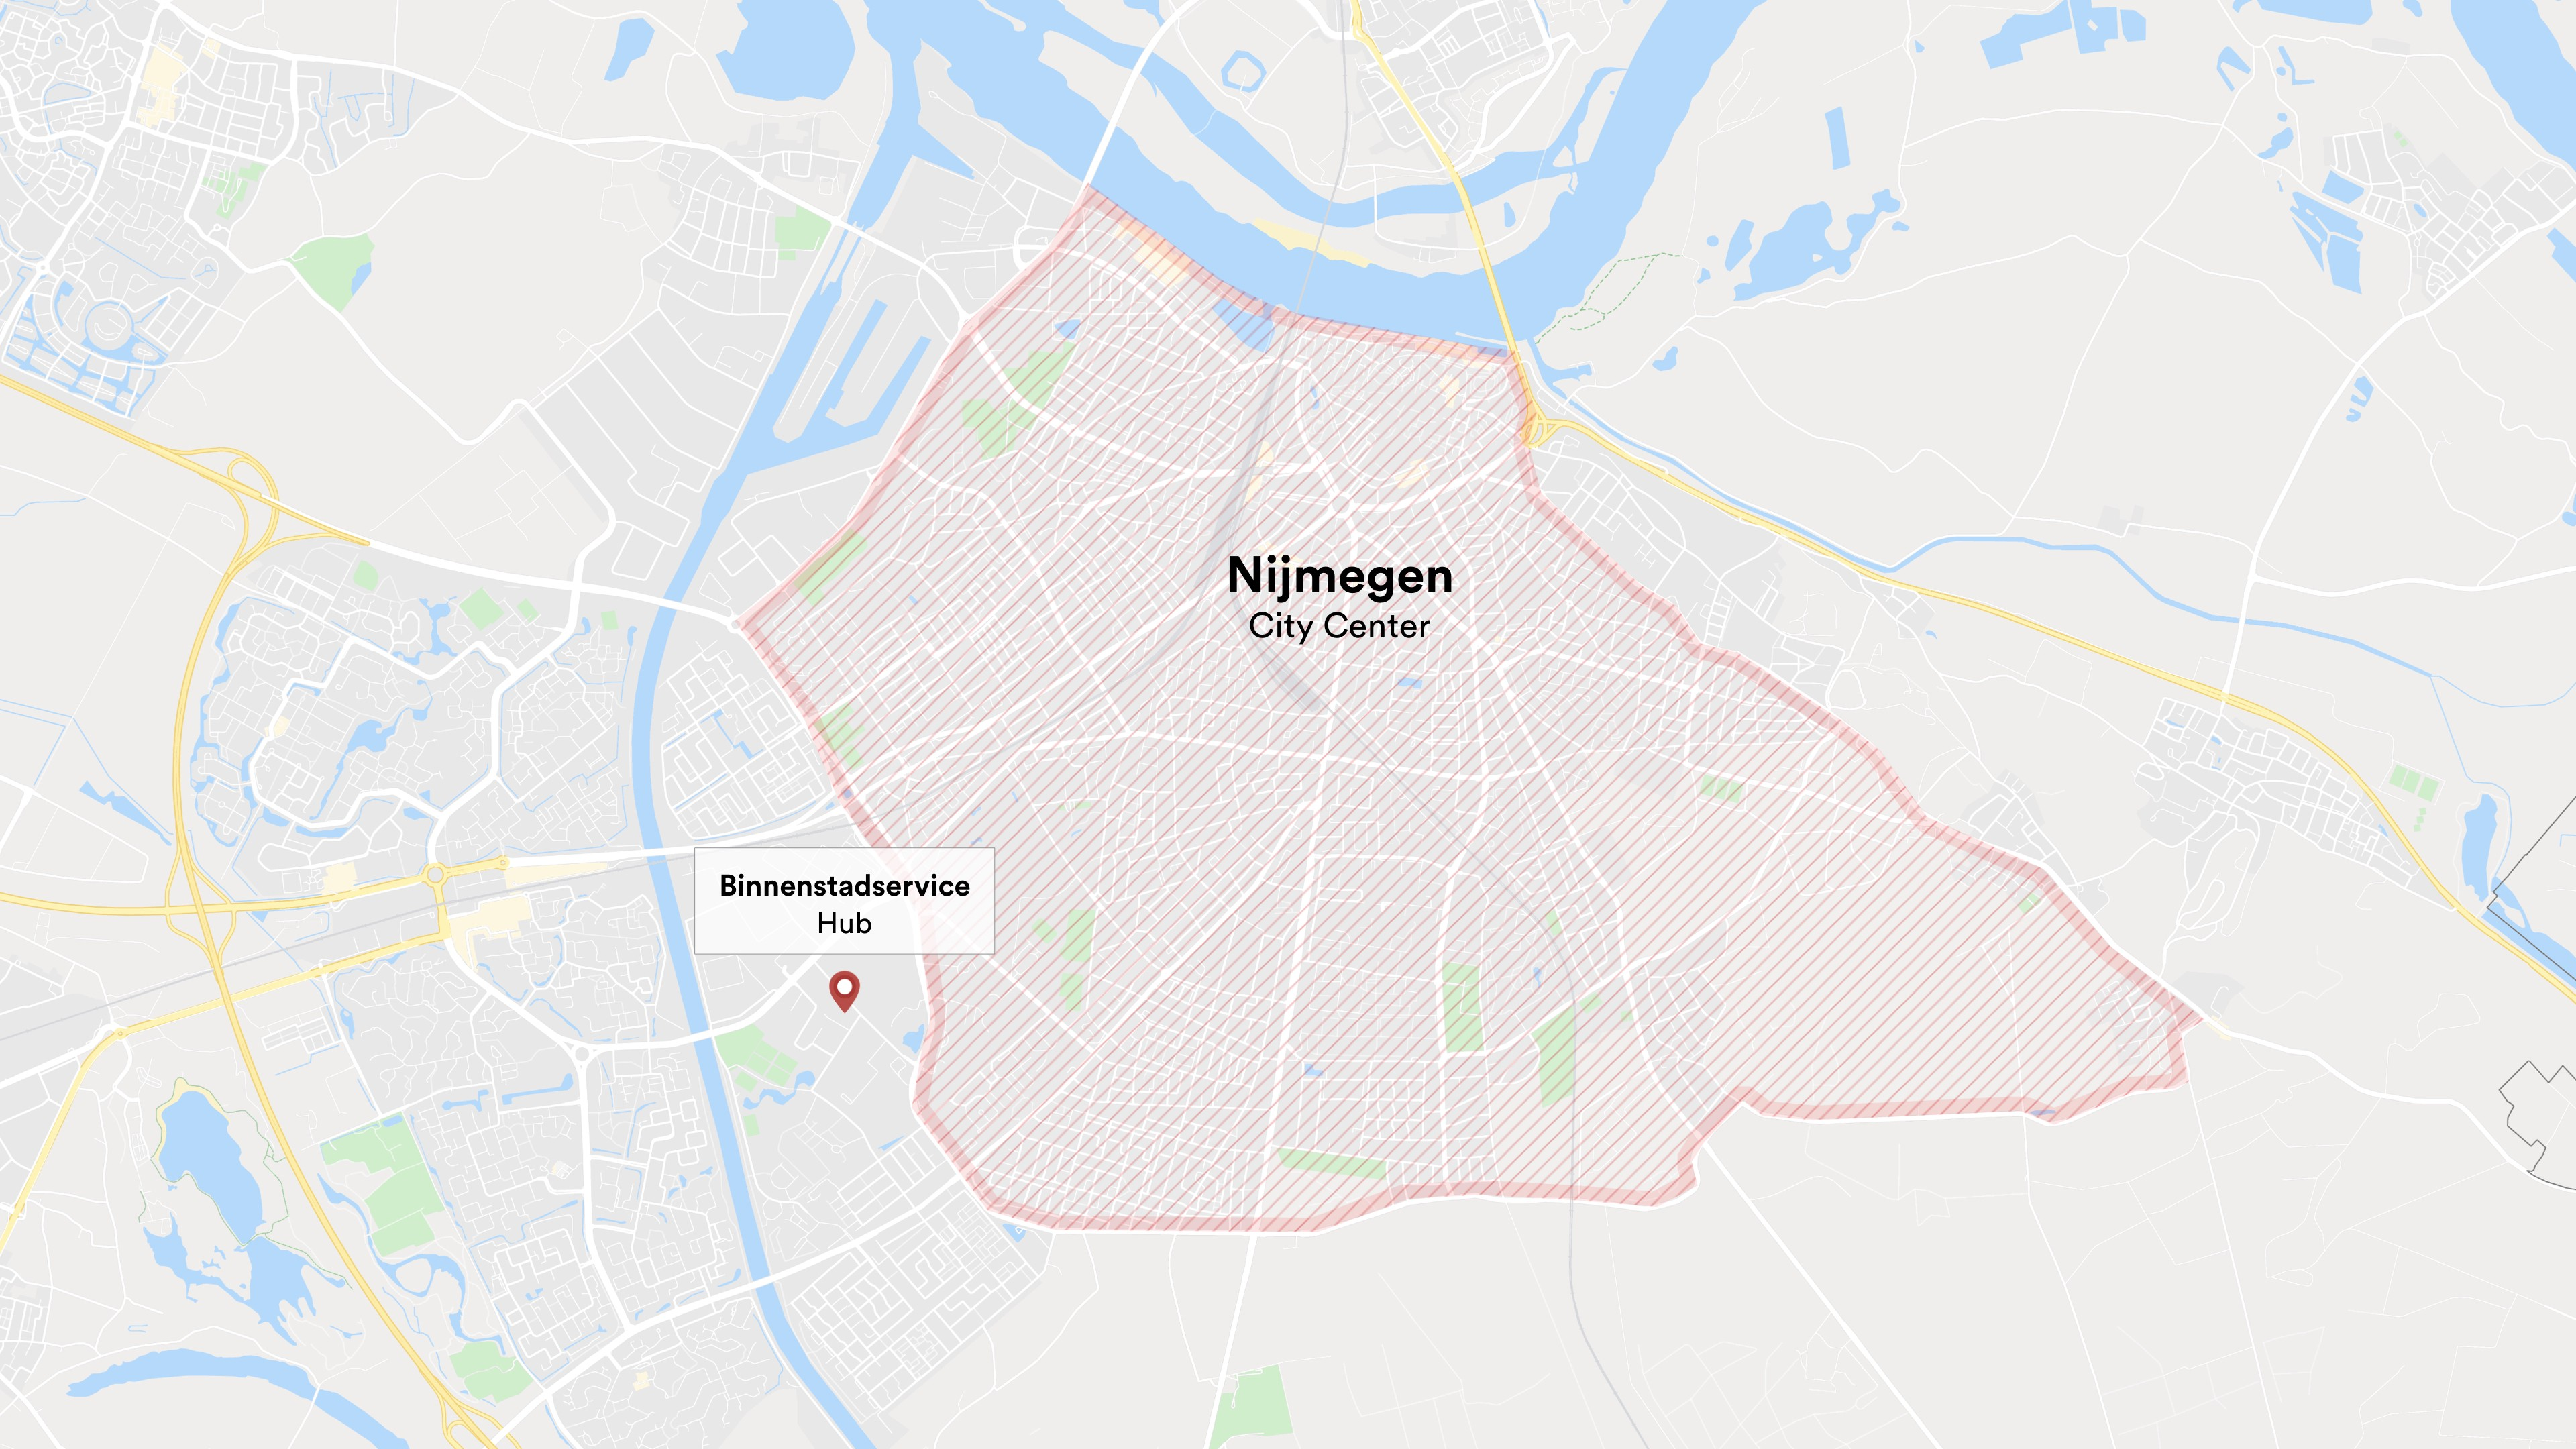 A map showing the location of the Binnenstadservice hub at the perimeter of Nijmegen.